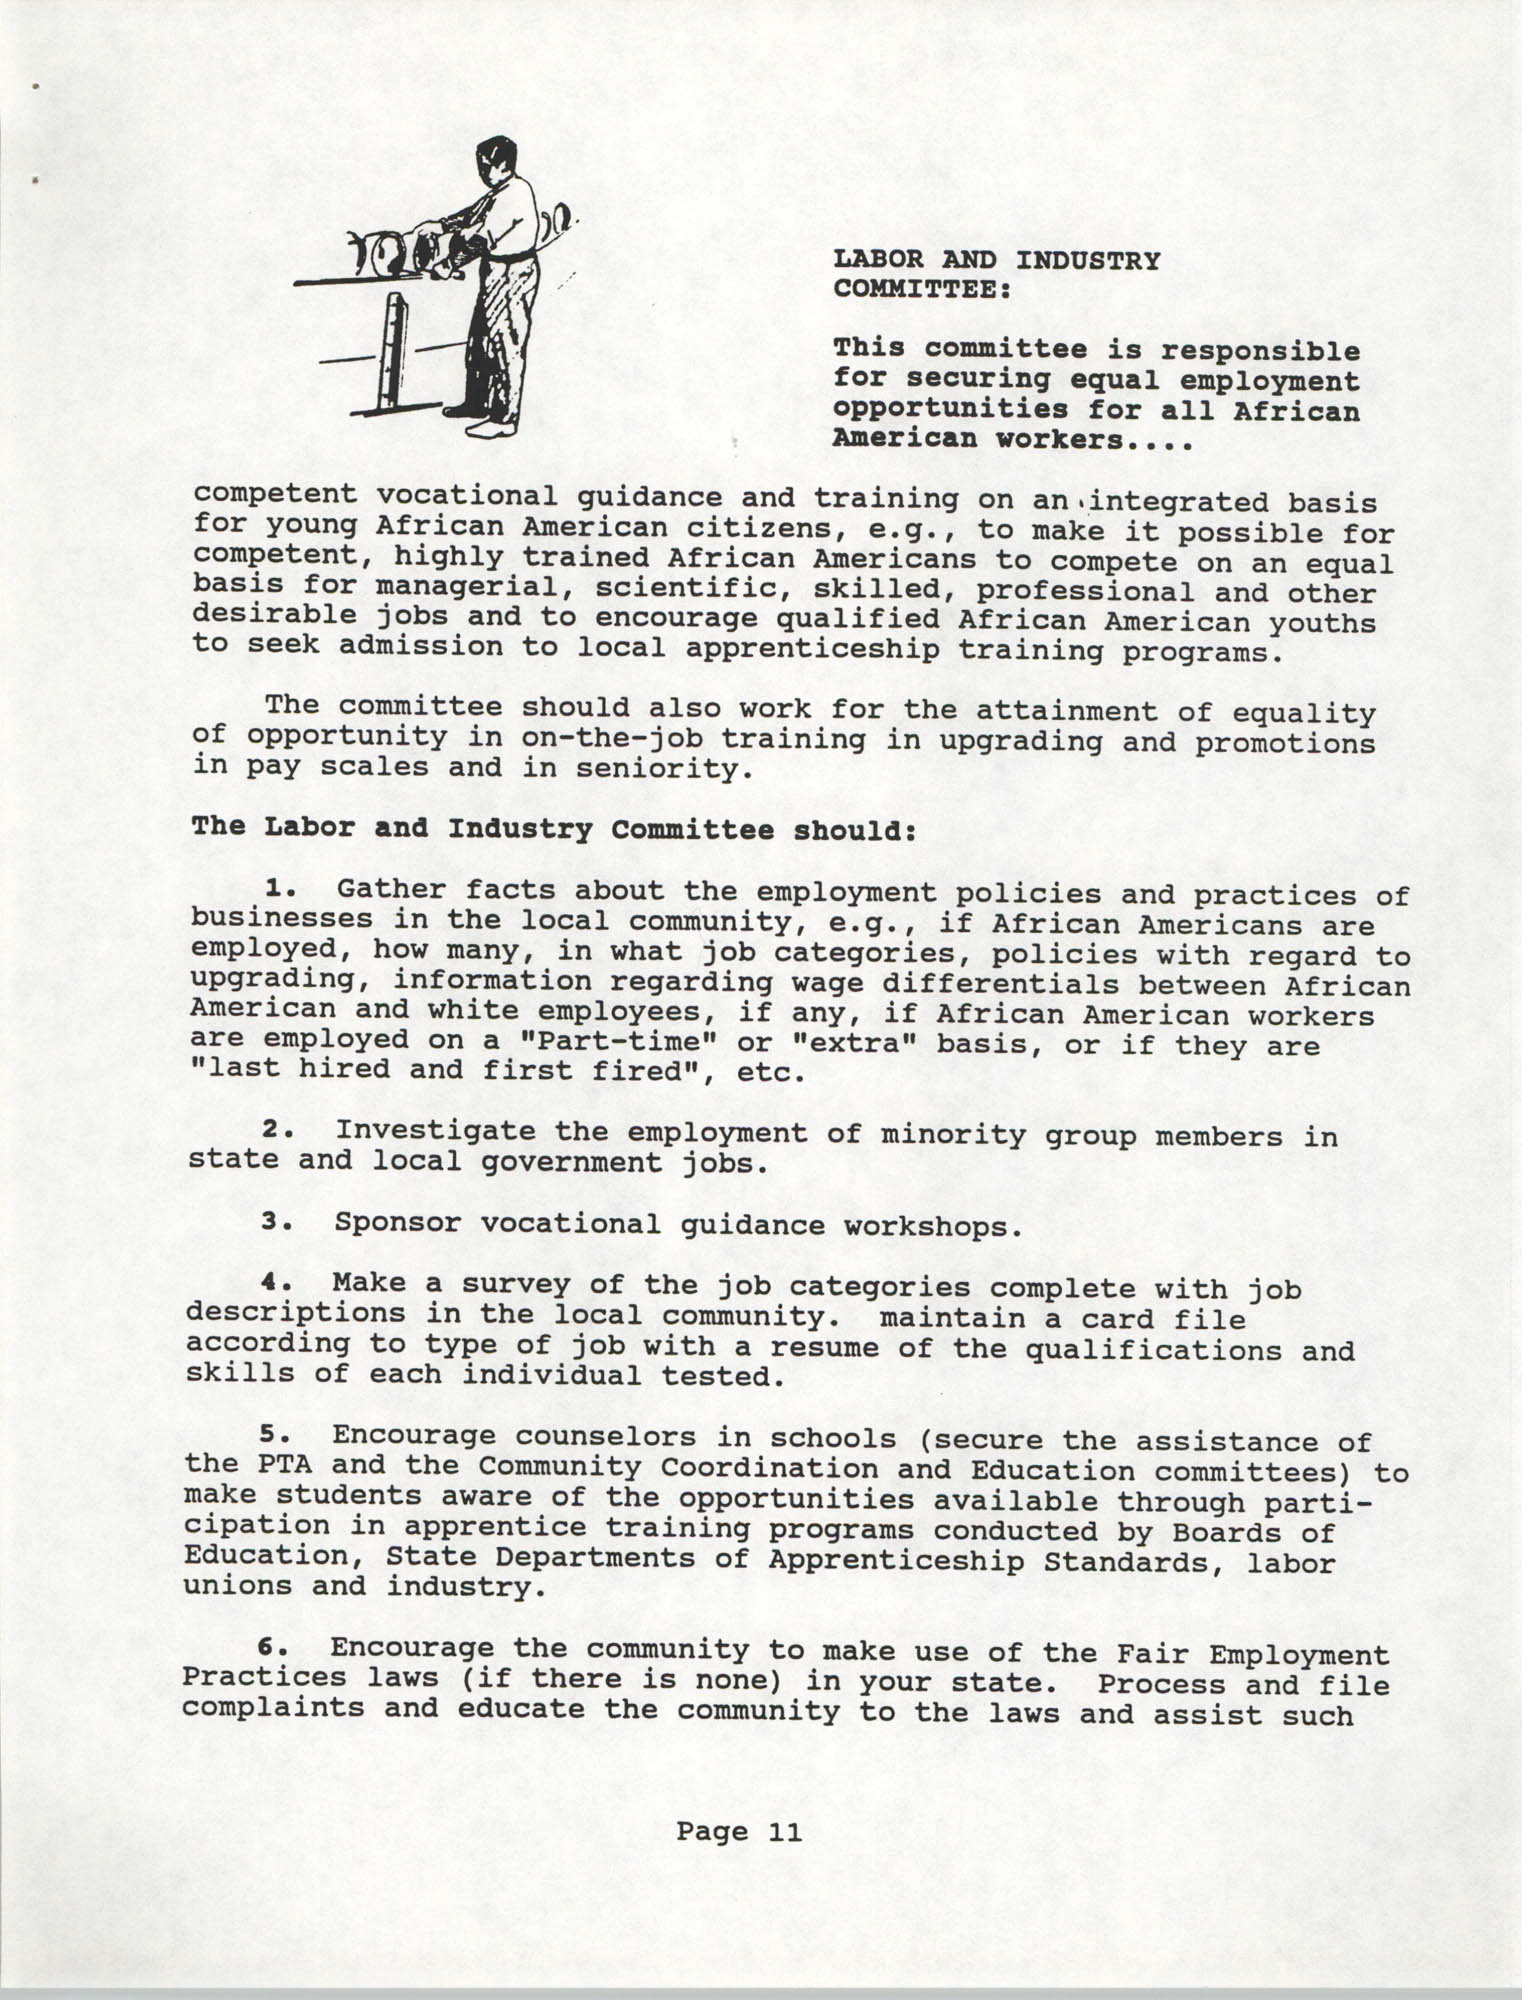 Branch Standing Committees Handbook for the South Carolina Conference of Branches for the NAACP, Page 11